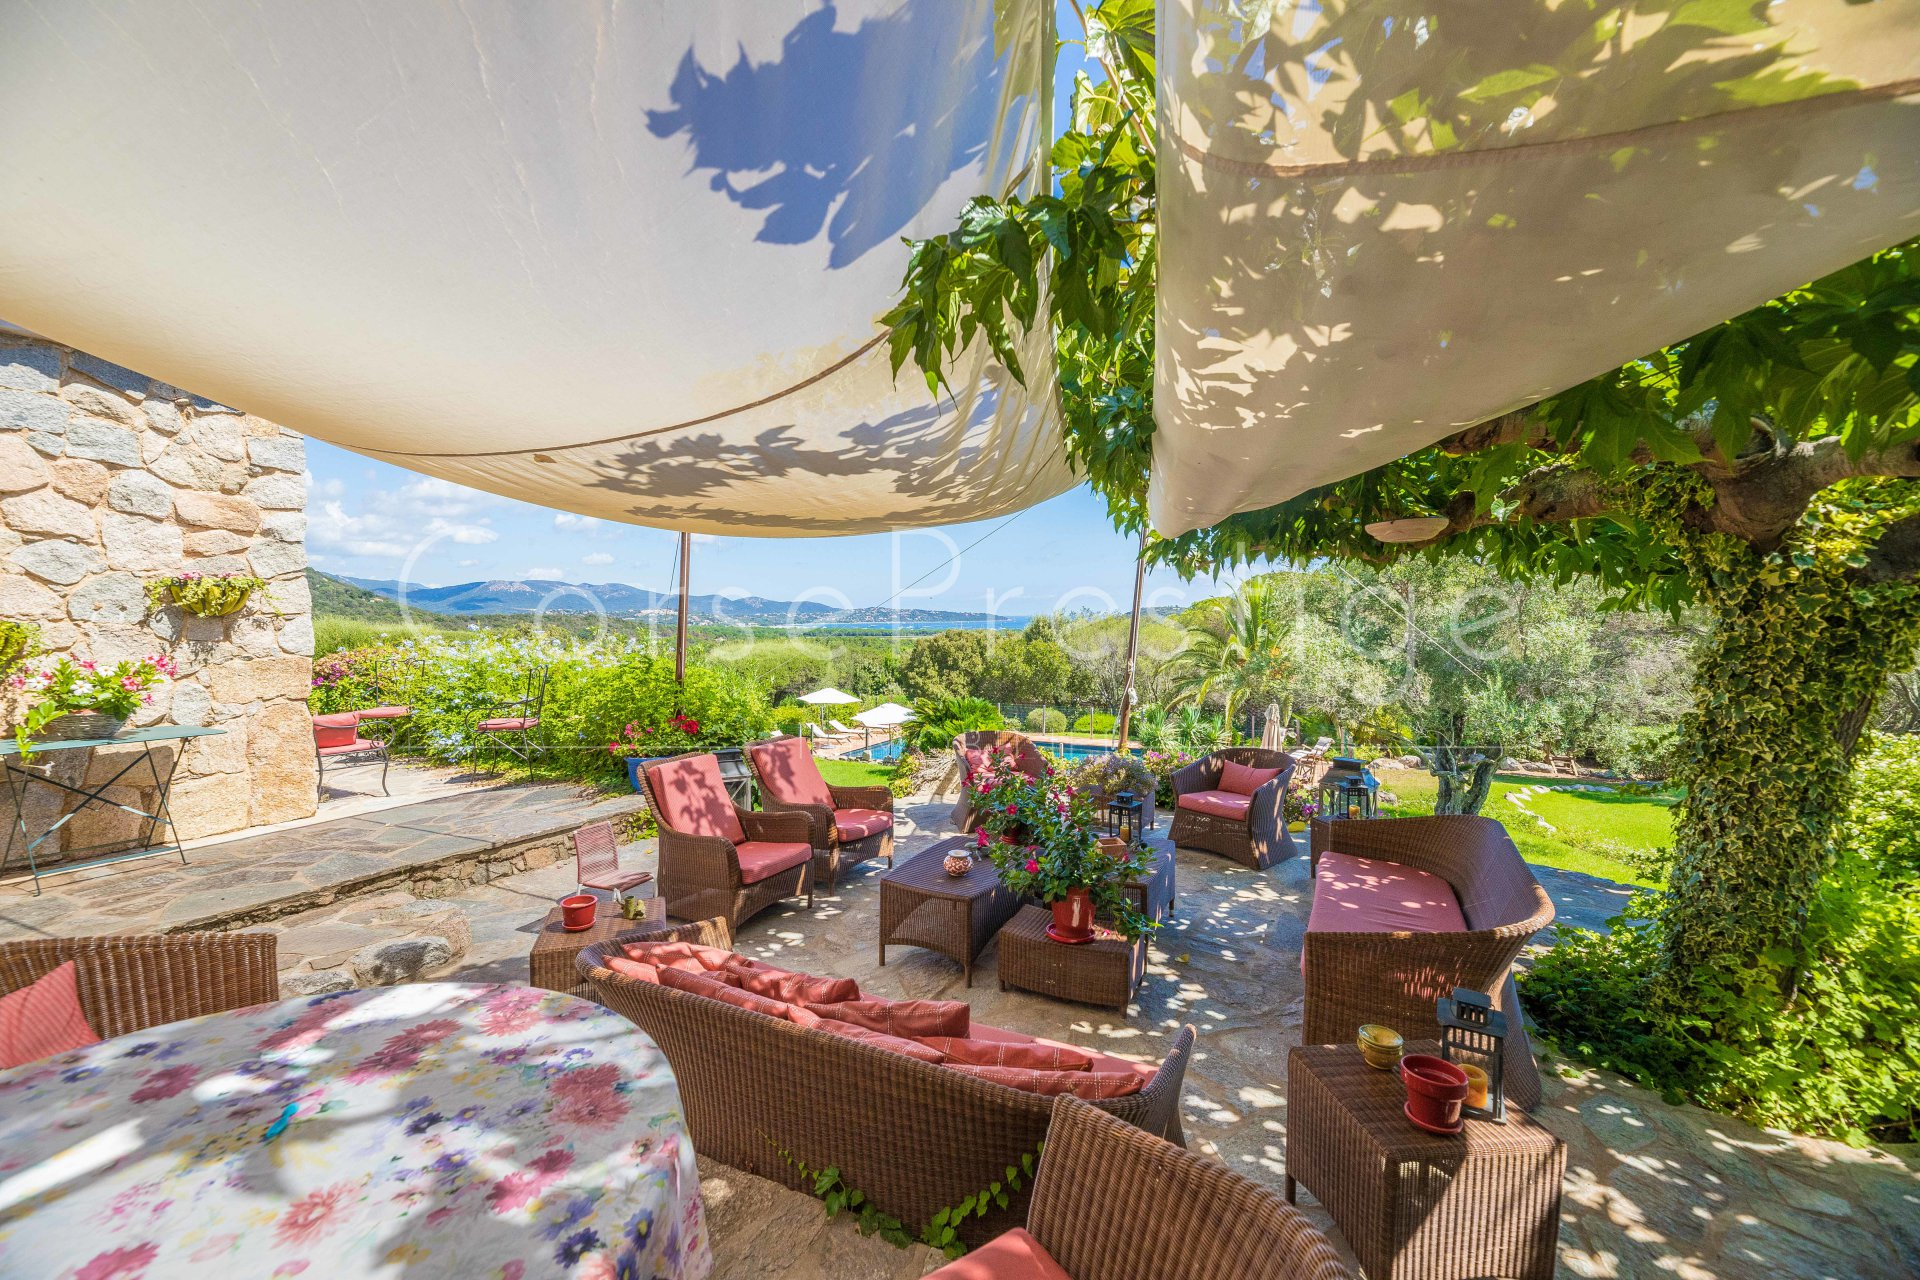 porto-vecchio charming property for sale facing pinarello image4